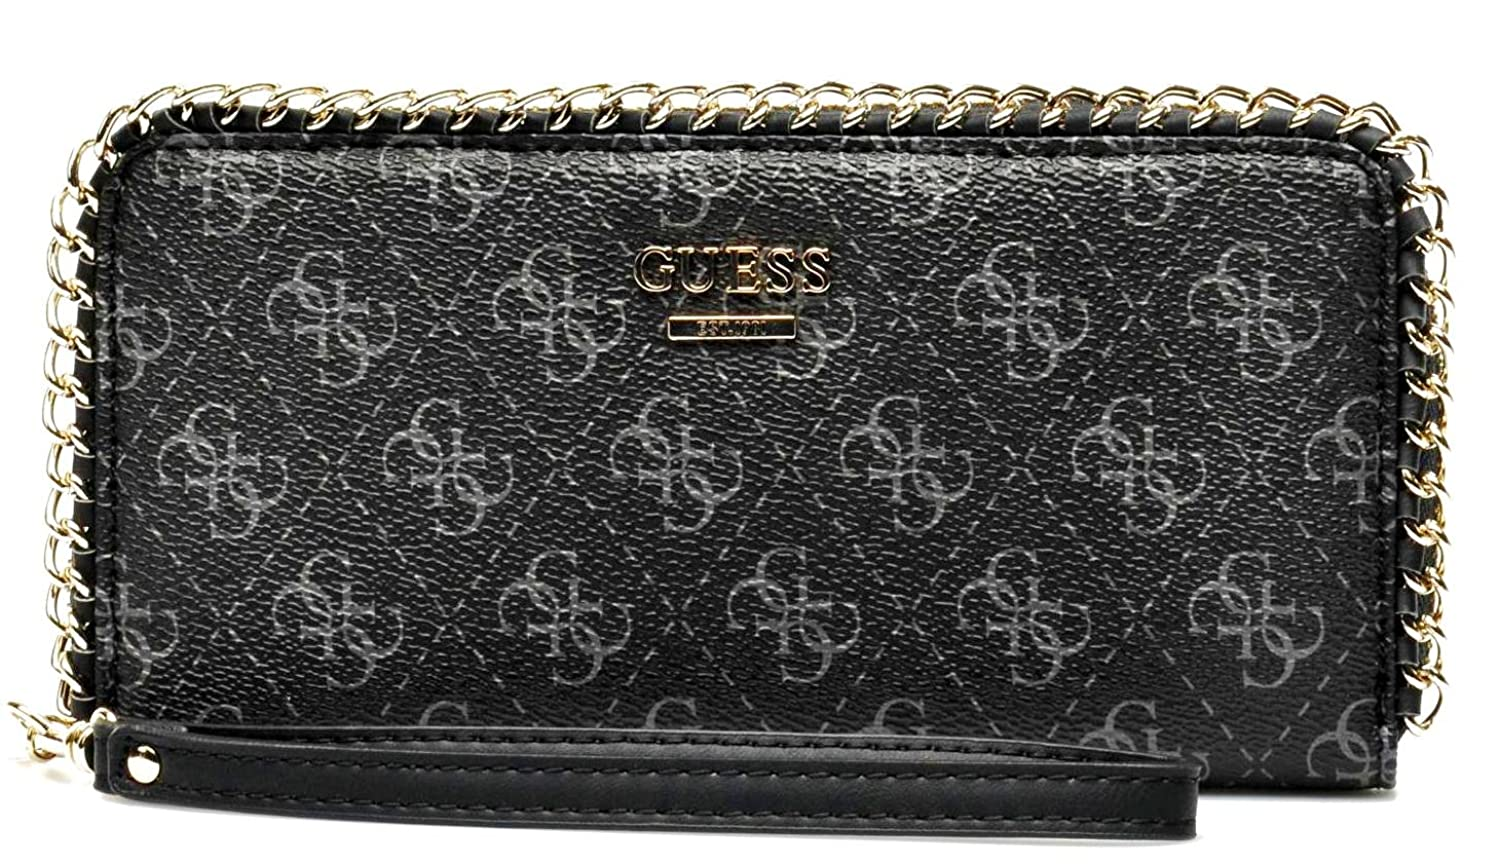 GUESS Confidential Logo Chain Zip-Aroud Wallet Clutch, Black guess guess flsup3 sup12 black